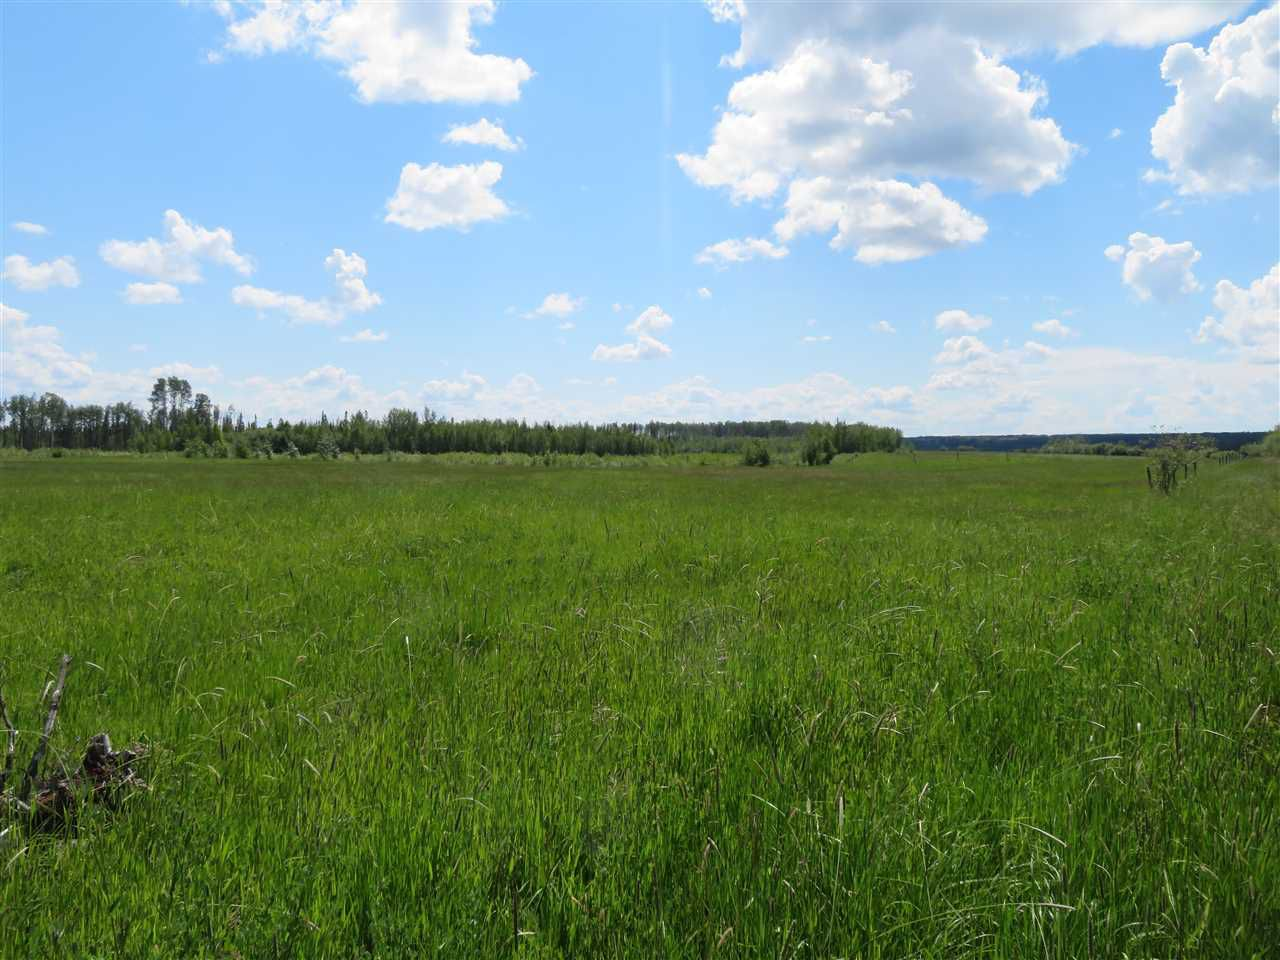 Main Photo: DL 3369 MCCONACHIE Road in Fort Nelson: Fort Nelson - Rural Land for sale (Fort Nelson (Zone 64))  : MLS®# R2384620